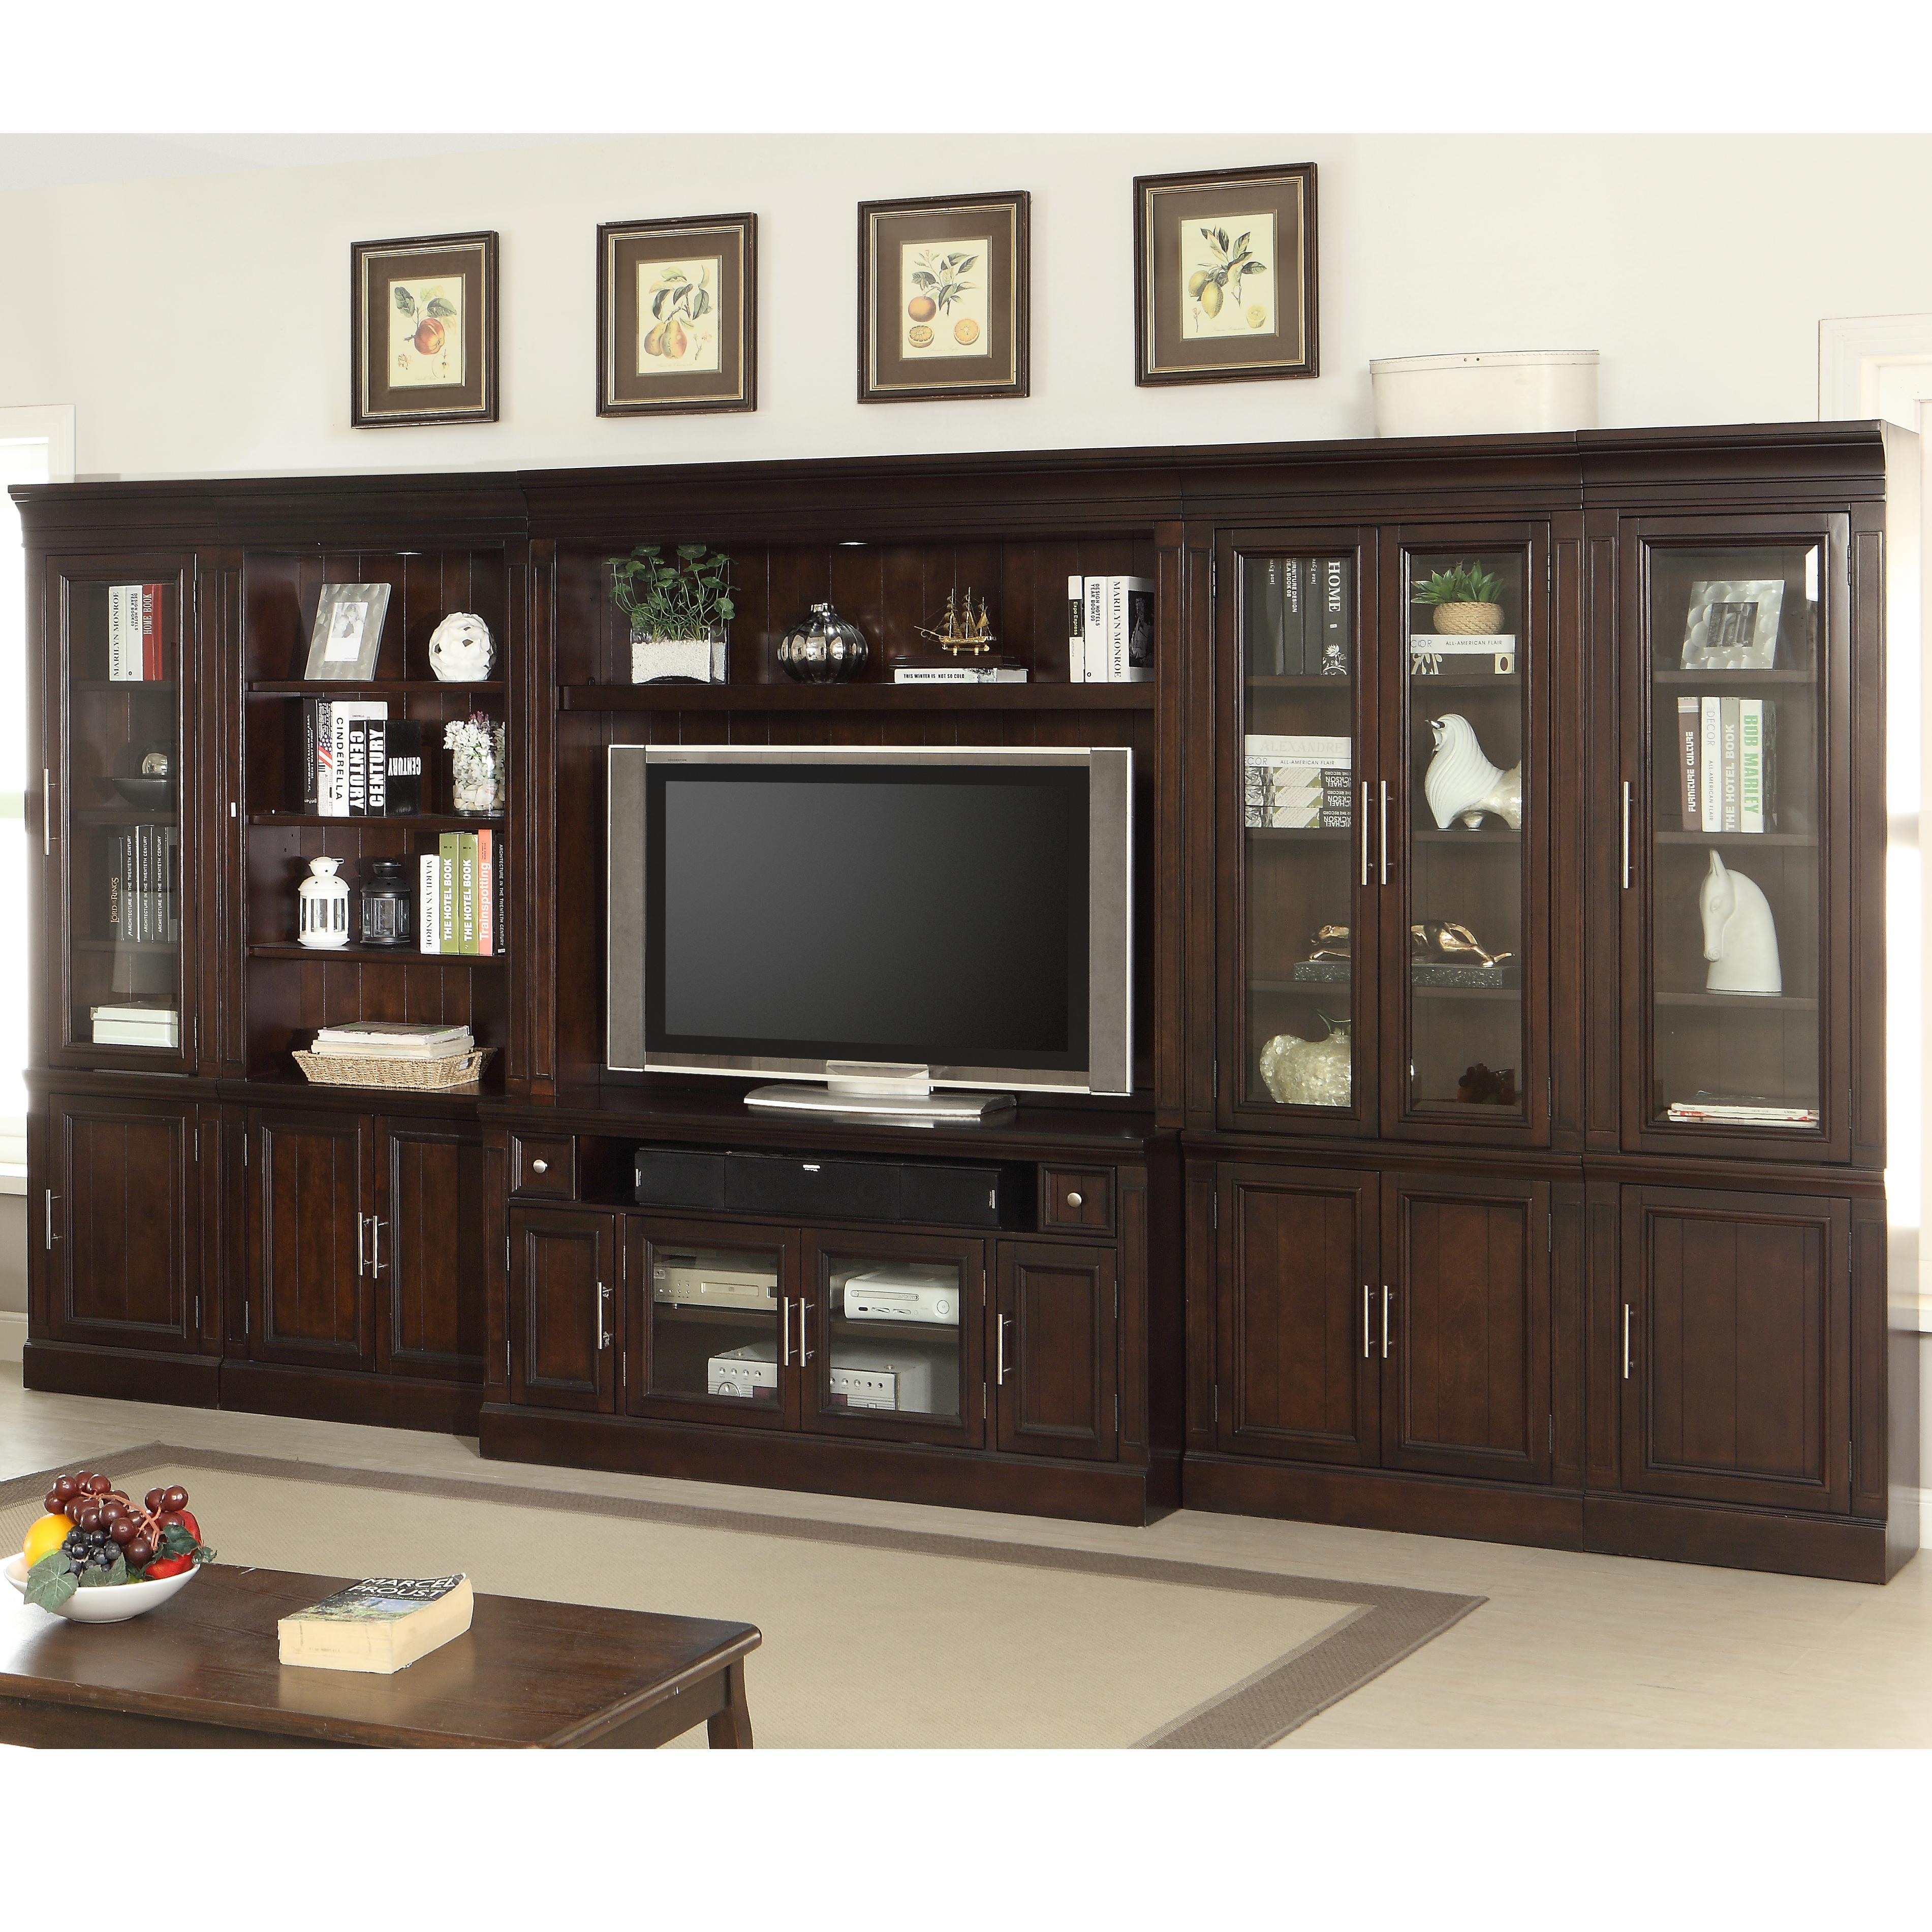 Parker House Stanford Wall Unit - Item Number: STA Wall Unit 7